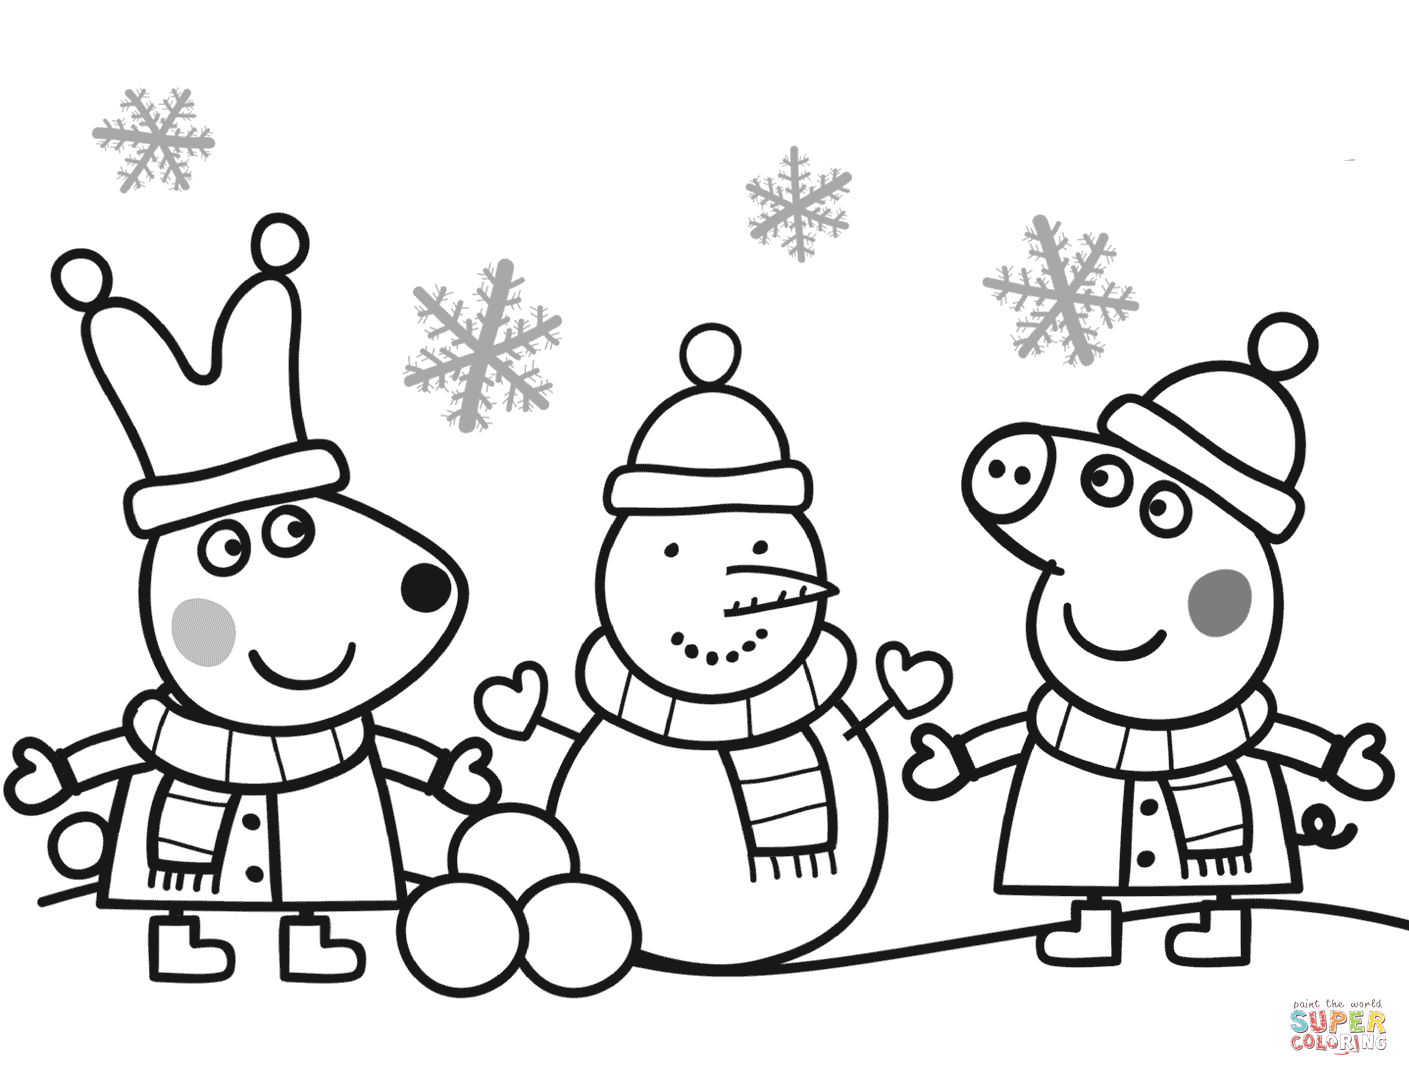 Santa Snowman Coloring Pages With Gift Box For Peppa Page Free Printable